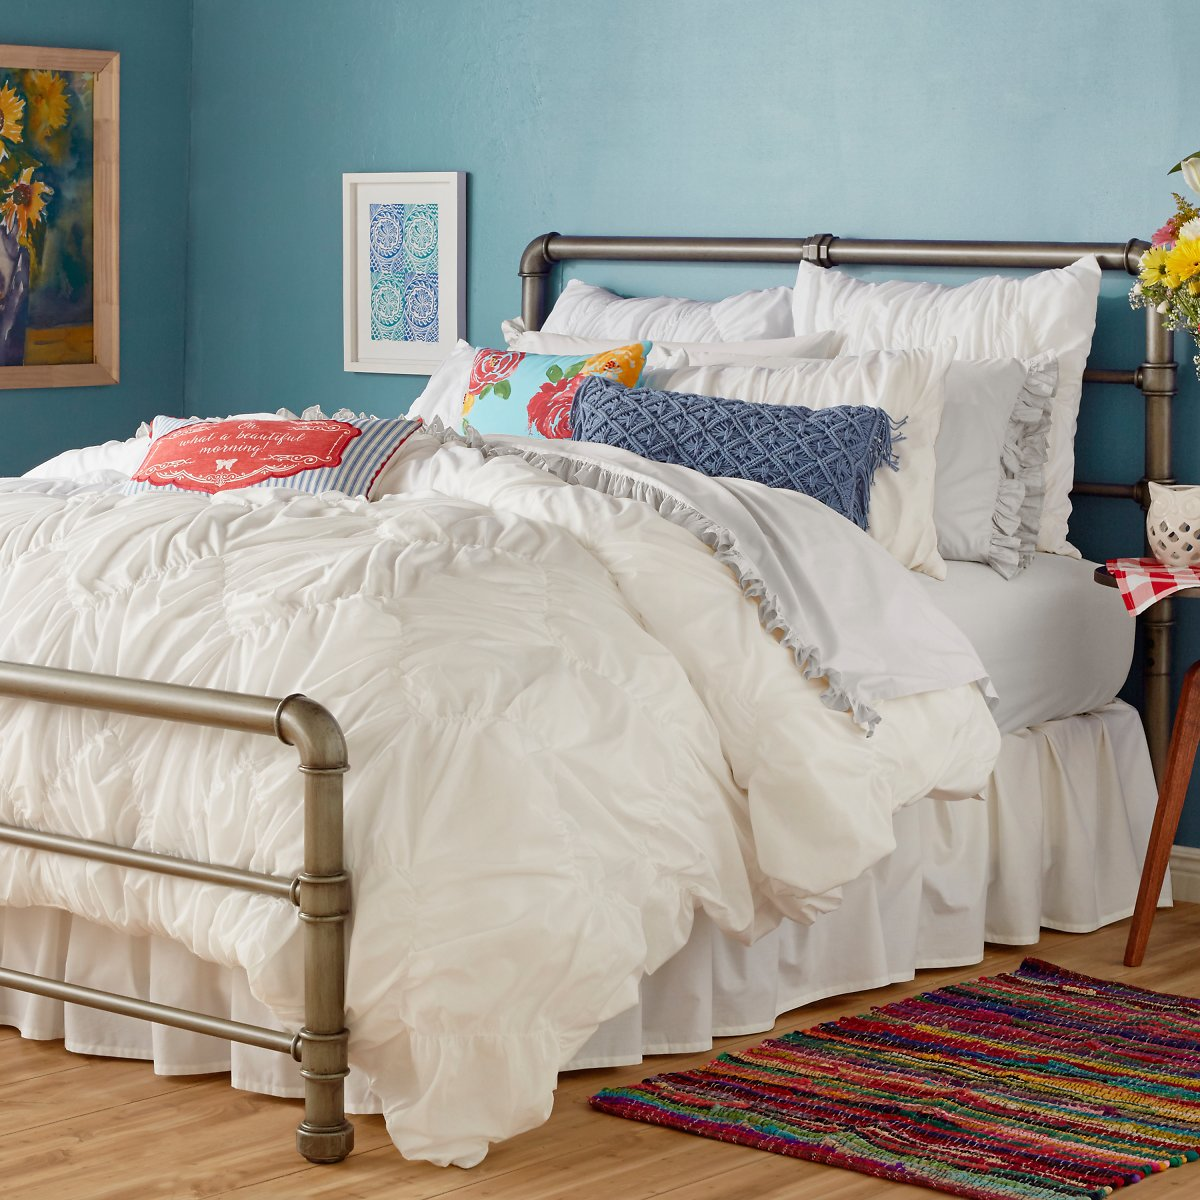 The Pioneer Woman Ruched Chevron Comforter, White - Full /Queen